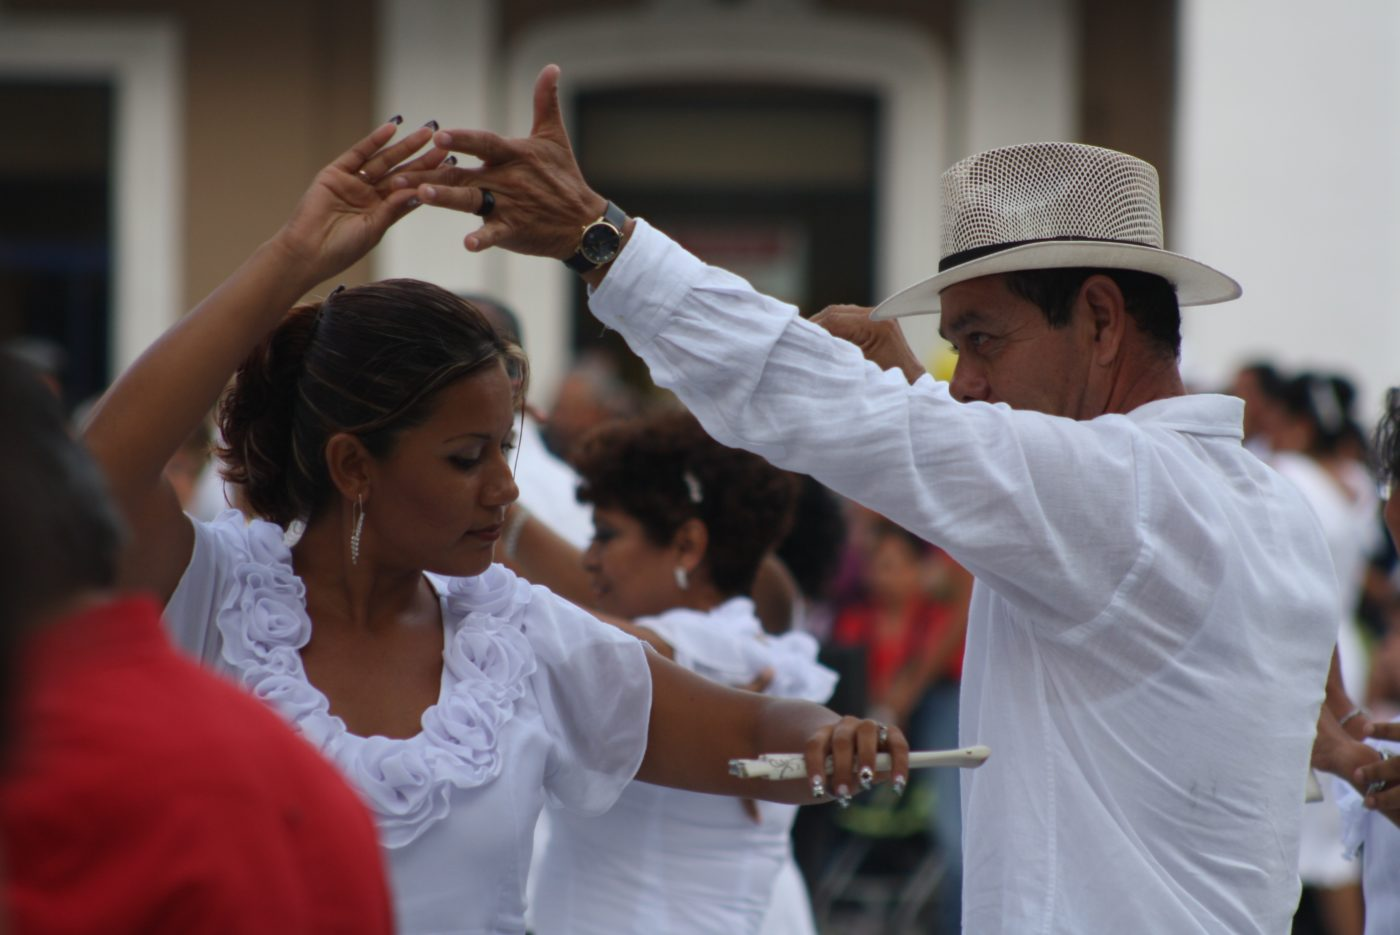 Picture of a couple dancing salsa on the street